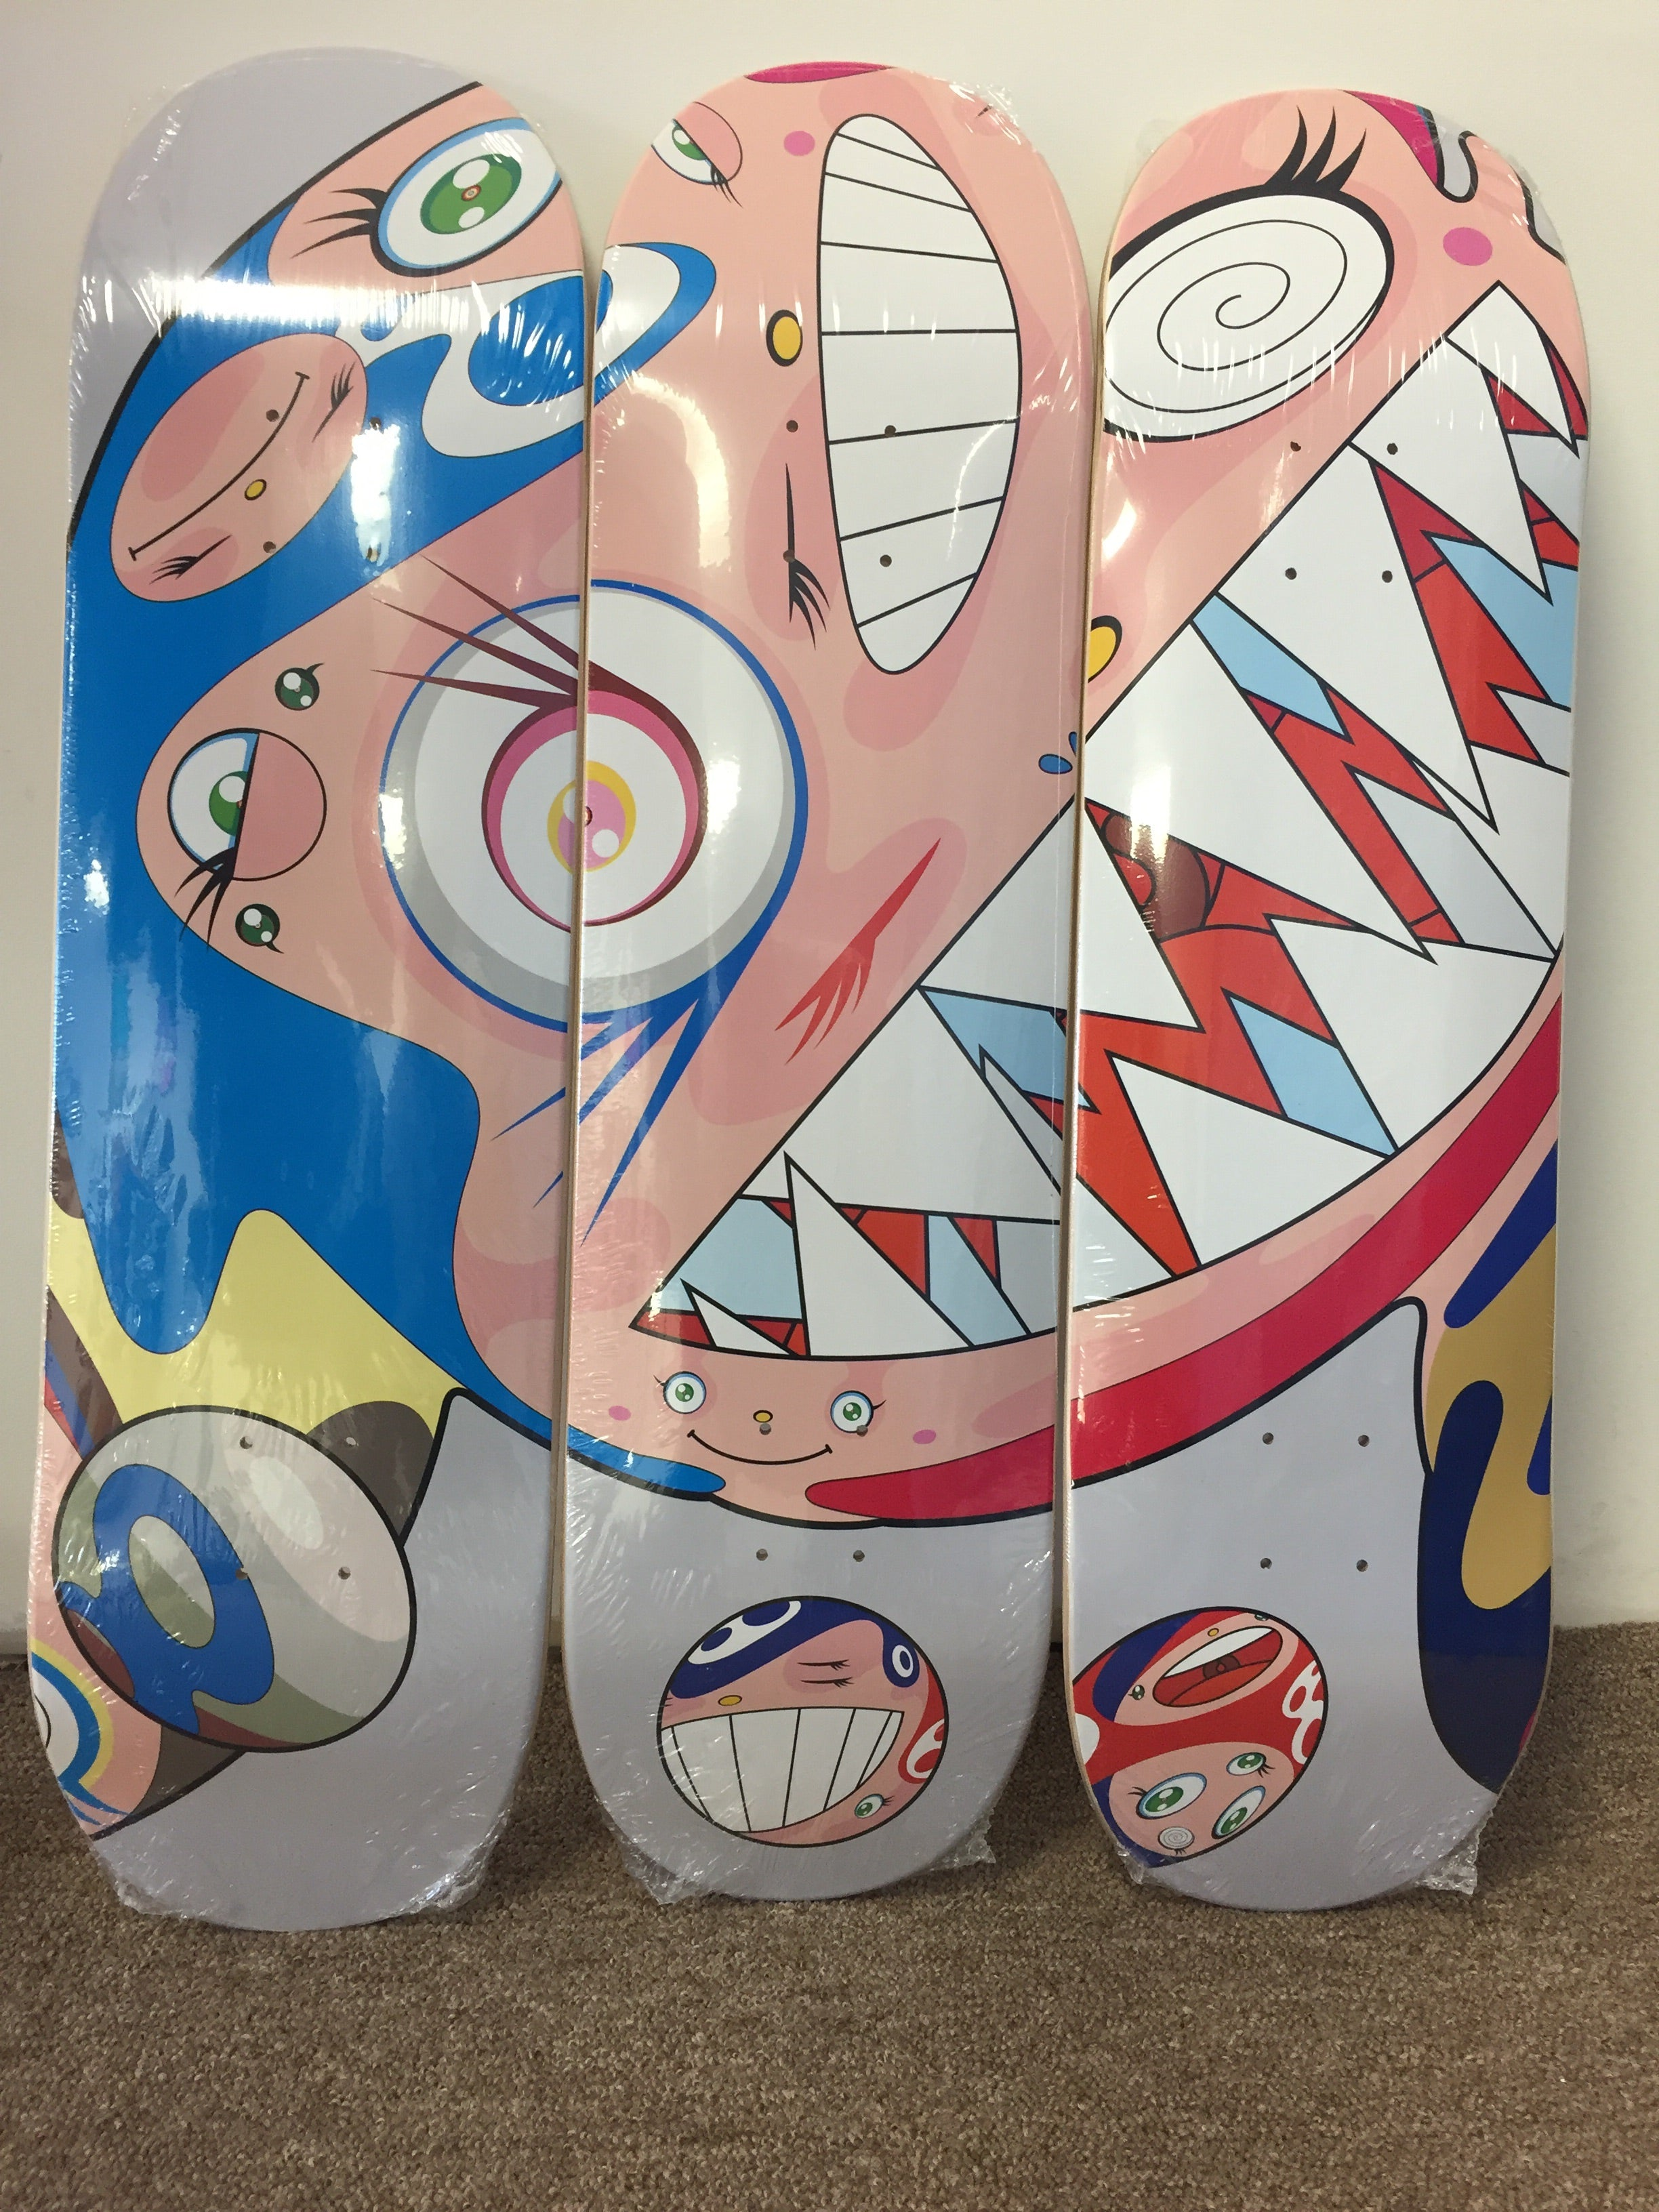 Complexcon - Takashi Murakami - Flying DOB Deck Set (3 Decks) - Gray